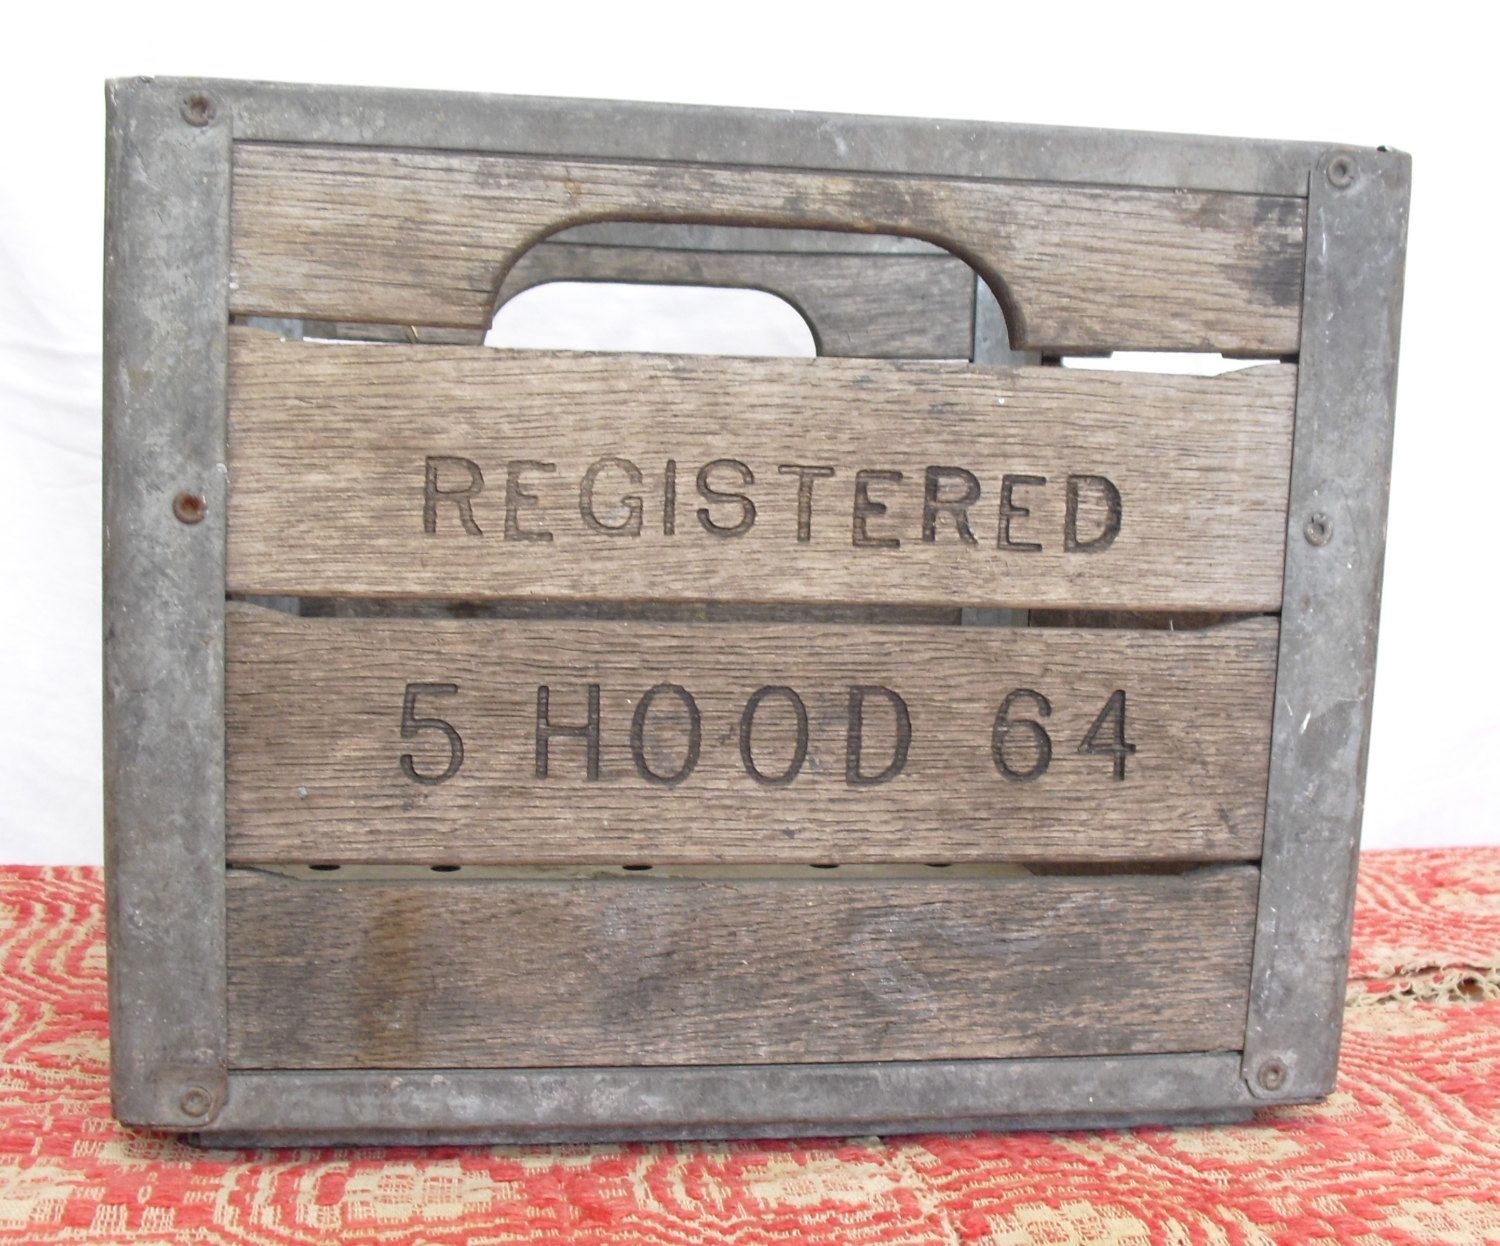 Authentic Hood Milk Crate 1964 H P Hood Old Milk Crate Vintage Wooden Milk Crate Rustic Dairy Crate Boston Mil Crate Decor Milk Crates Milk Crate Furniture